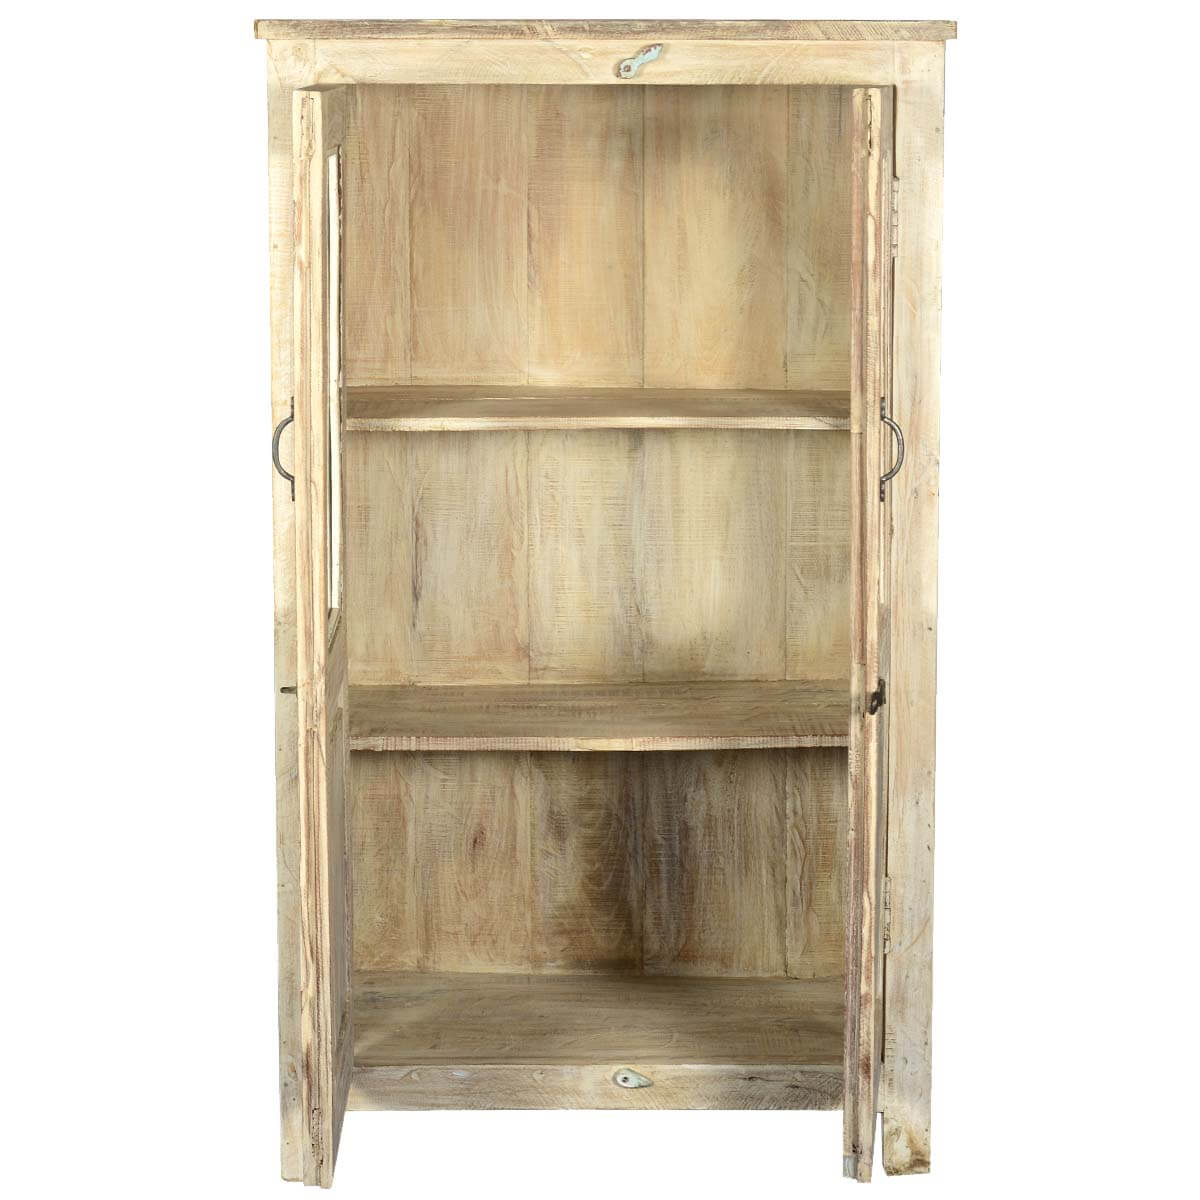 Tall Wooden Storage Cabinets ~ Door reclaimed wood tall storage cabinet